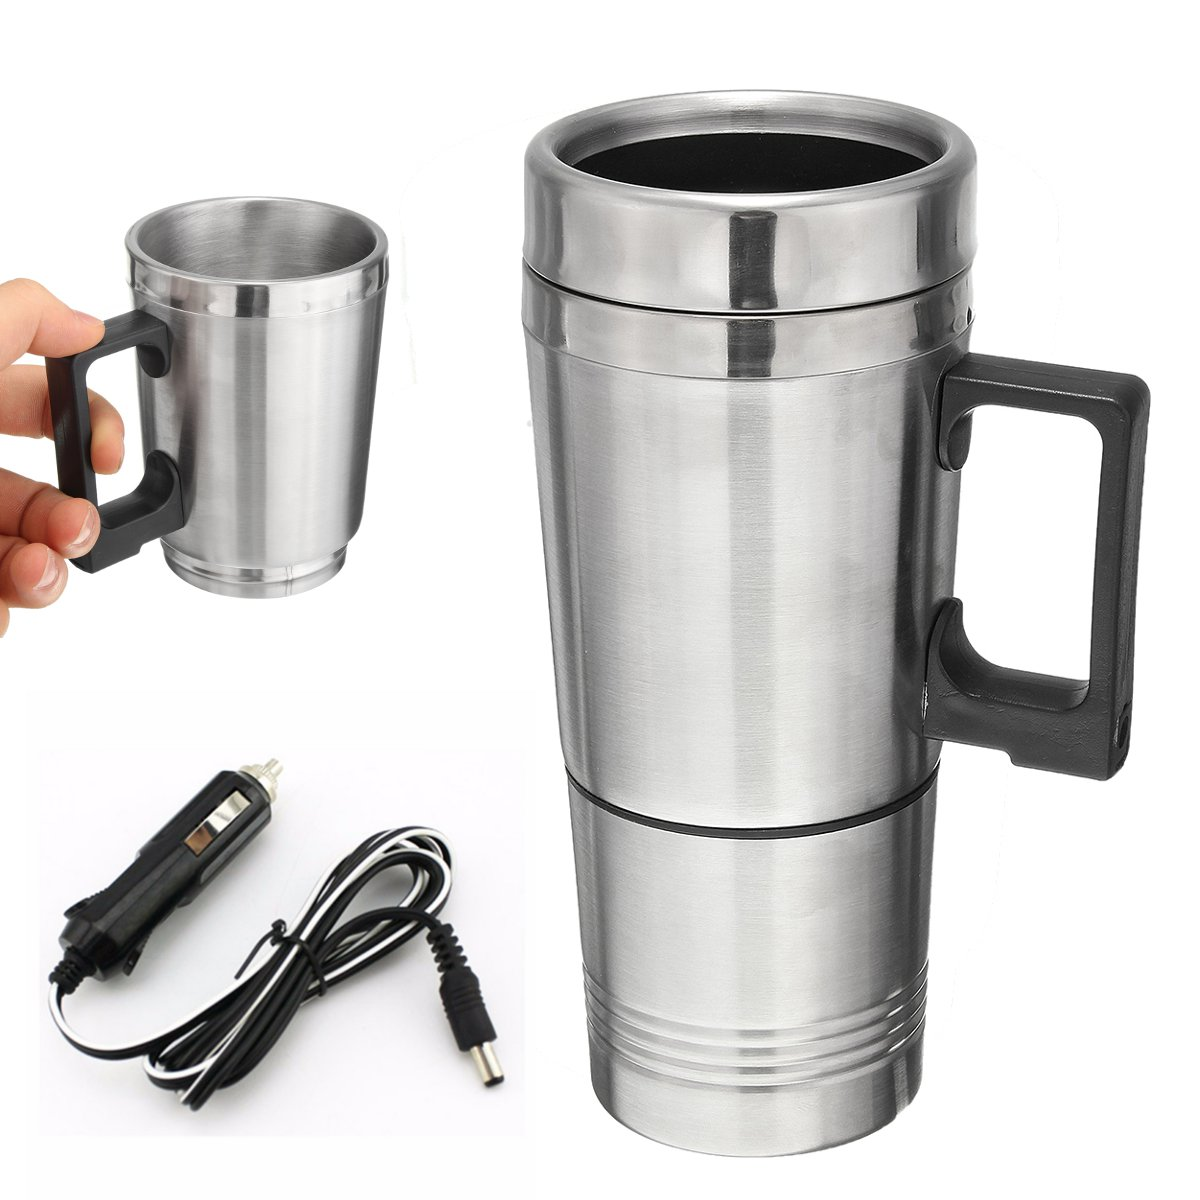 Stainless Steel 12v 500ml Car Auto Heating Kettle Boiler Water Thermoses Mug Vehicle Coffee Maker Tea Pot Vehicle Heater Cup Bottle